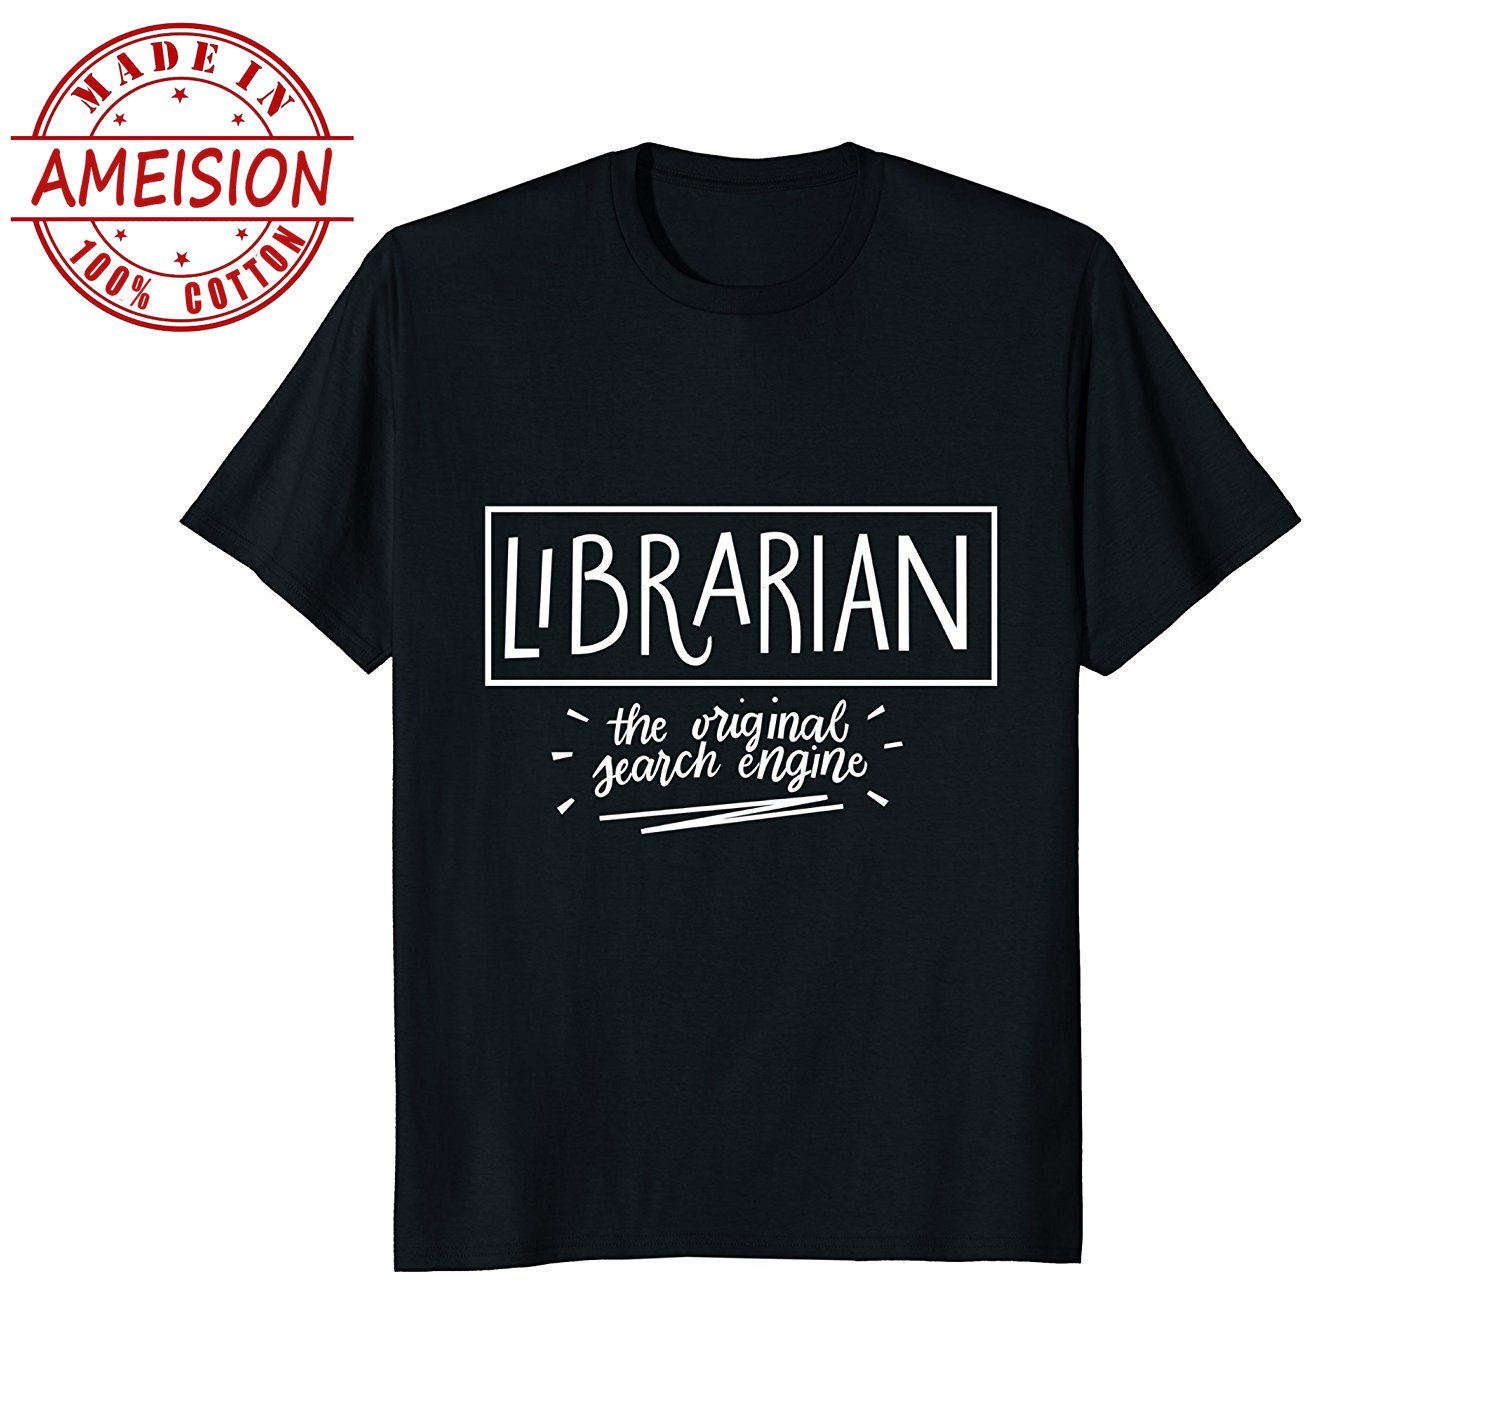 New Summer Hot Sale mens fashion 2019 Librarian Original Search Engine Shirt | Librarian Gifts Tee Tee shirt image